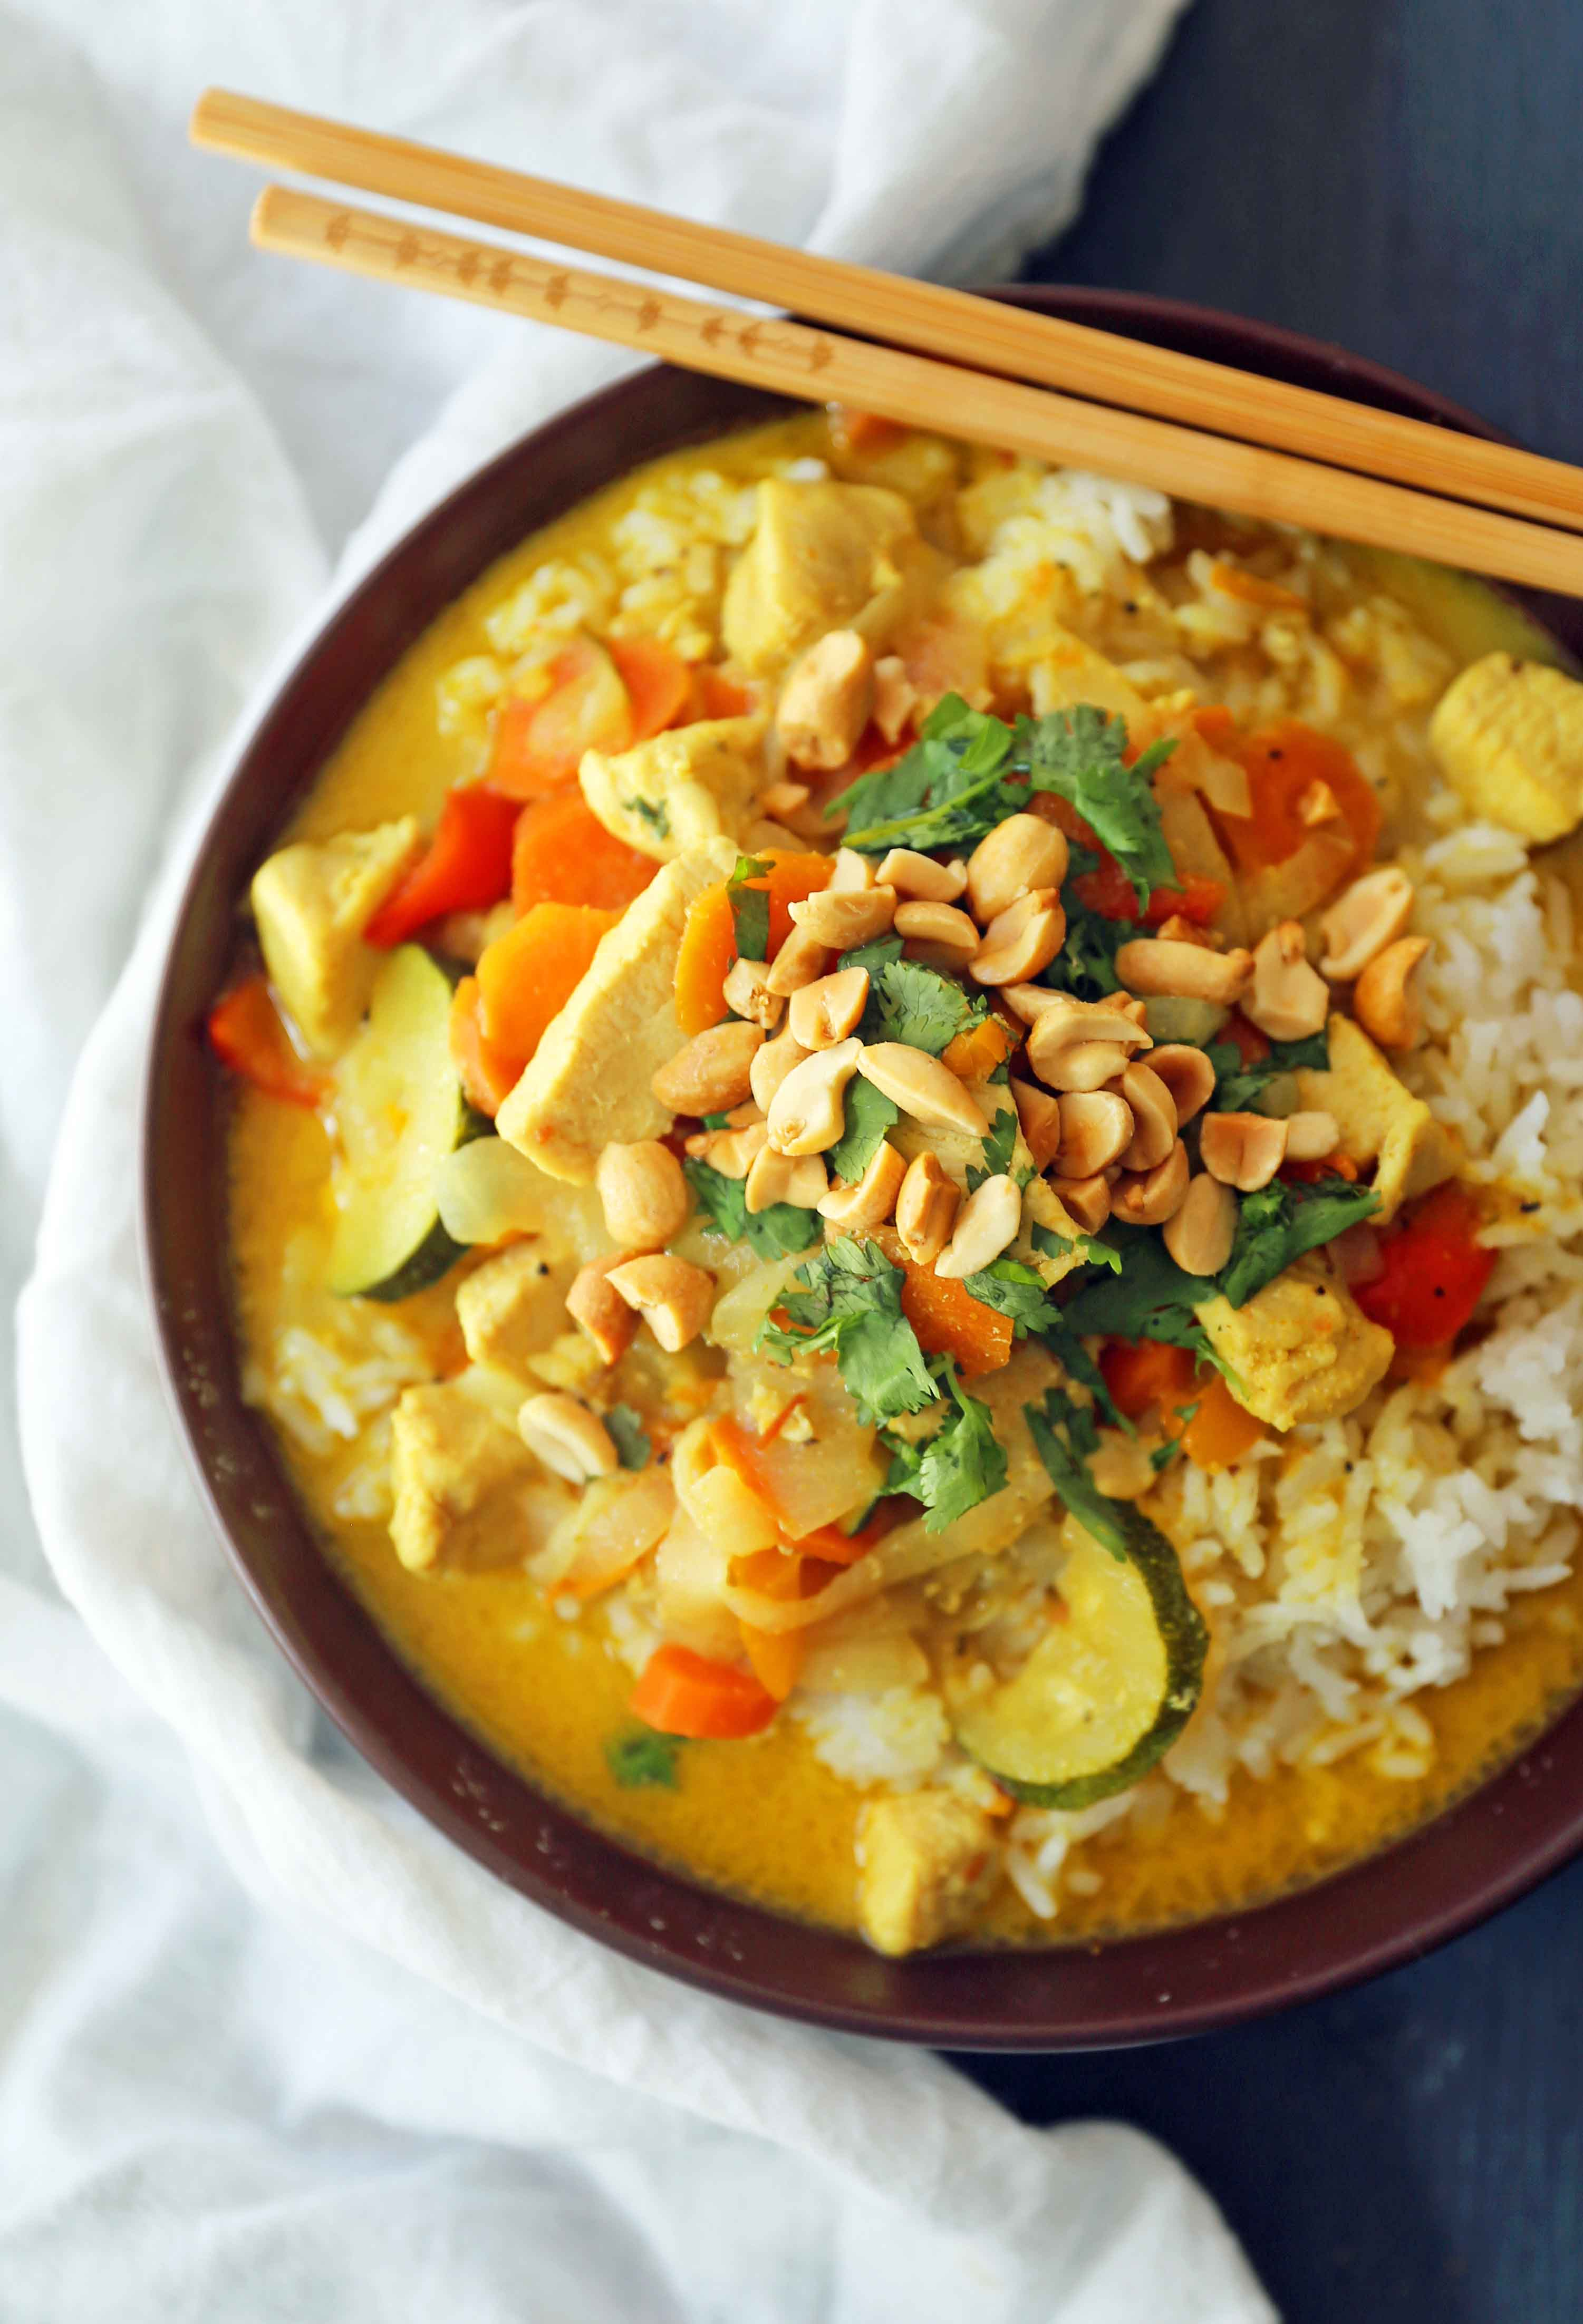 Thai Green Curry with Chicken and Veggies. A healthy gluten-free and dairy-free curry recipe. Chicken Curry with Vegetables in a Coconut Broth. www.modernhoney.com #curry #chickencurry #glutenfree #dairyfree #thaicurry